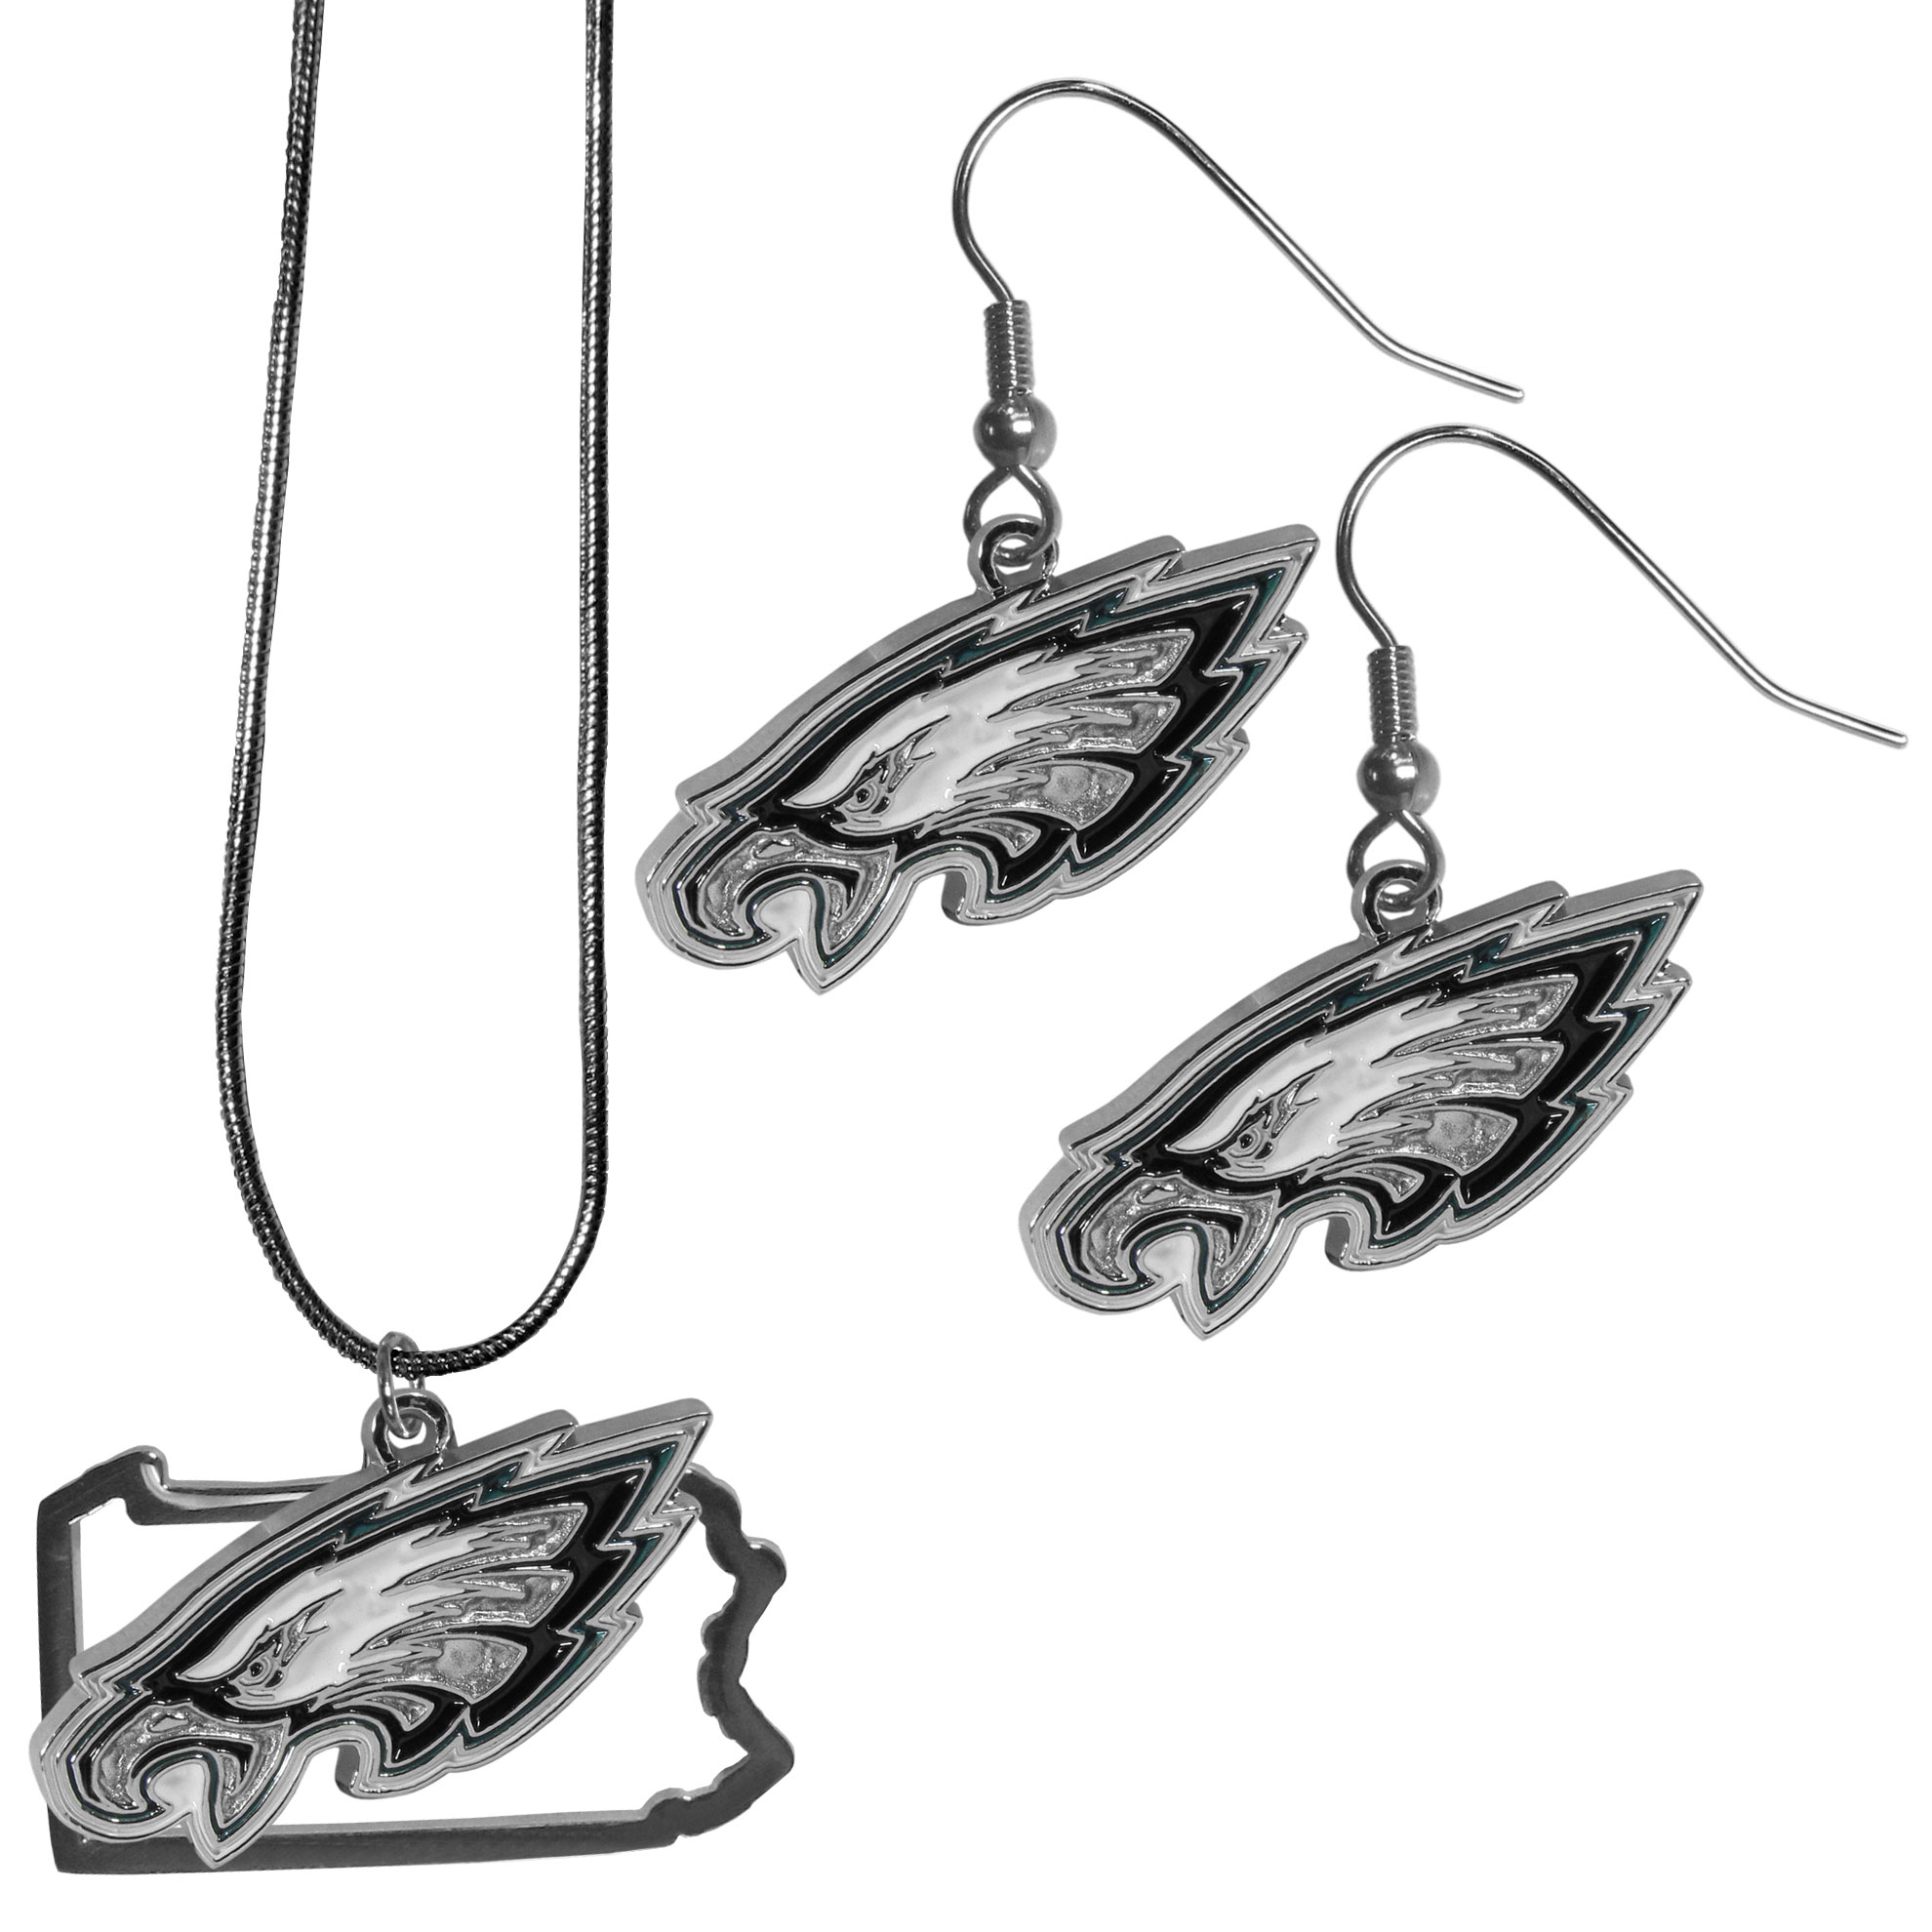 Philadelphia Eagles Dangle Earrings and State Necklace Set - Get in on the trend! State themes are a trend that just keeps getting more popular and this jewelry set takes the state style and give it a sporty twist with a Philadelphia Eagles necklace that features an Arizona state outline charm paired with a beautiful team charm and matching team charm dangle earrings. The earrings feature hypoallergenic fishhook posts that are nickel free.